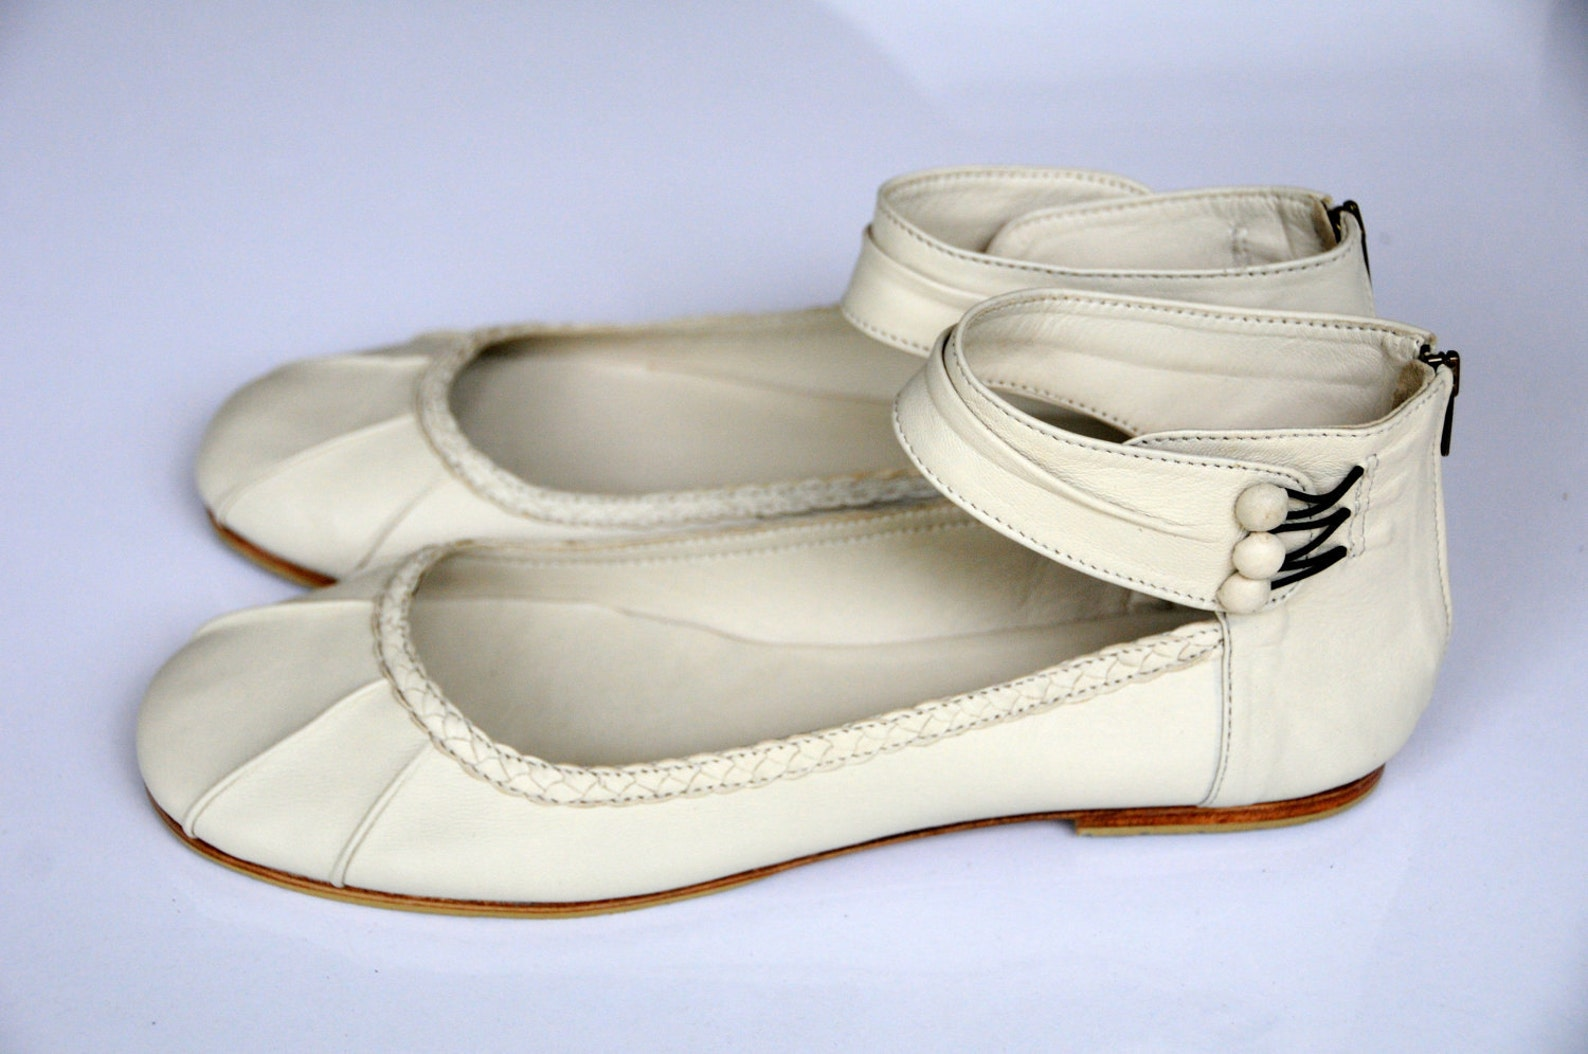 muse. ballet flats / leather shoes / bridal shoes / wedding shoes / ivory flats. sizes us 4-13 . available in different leather